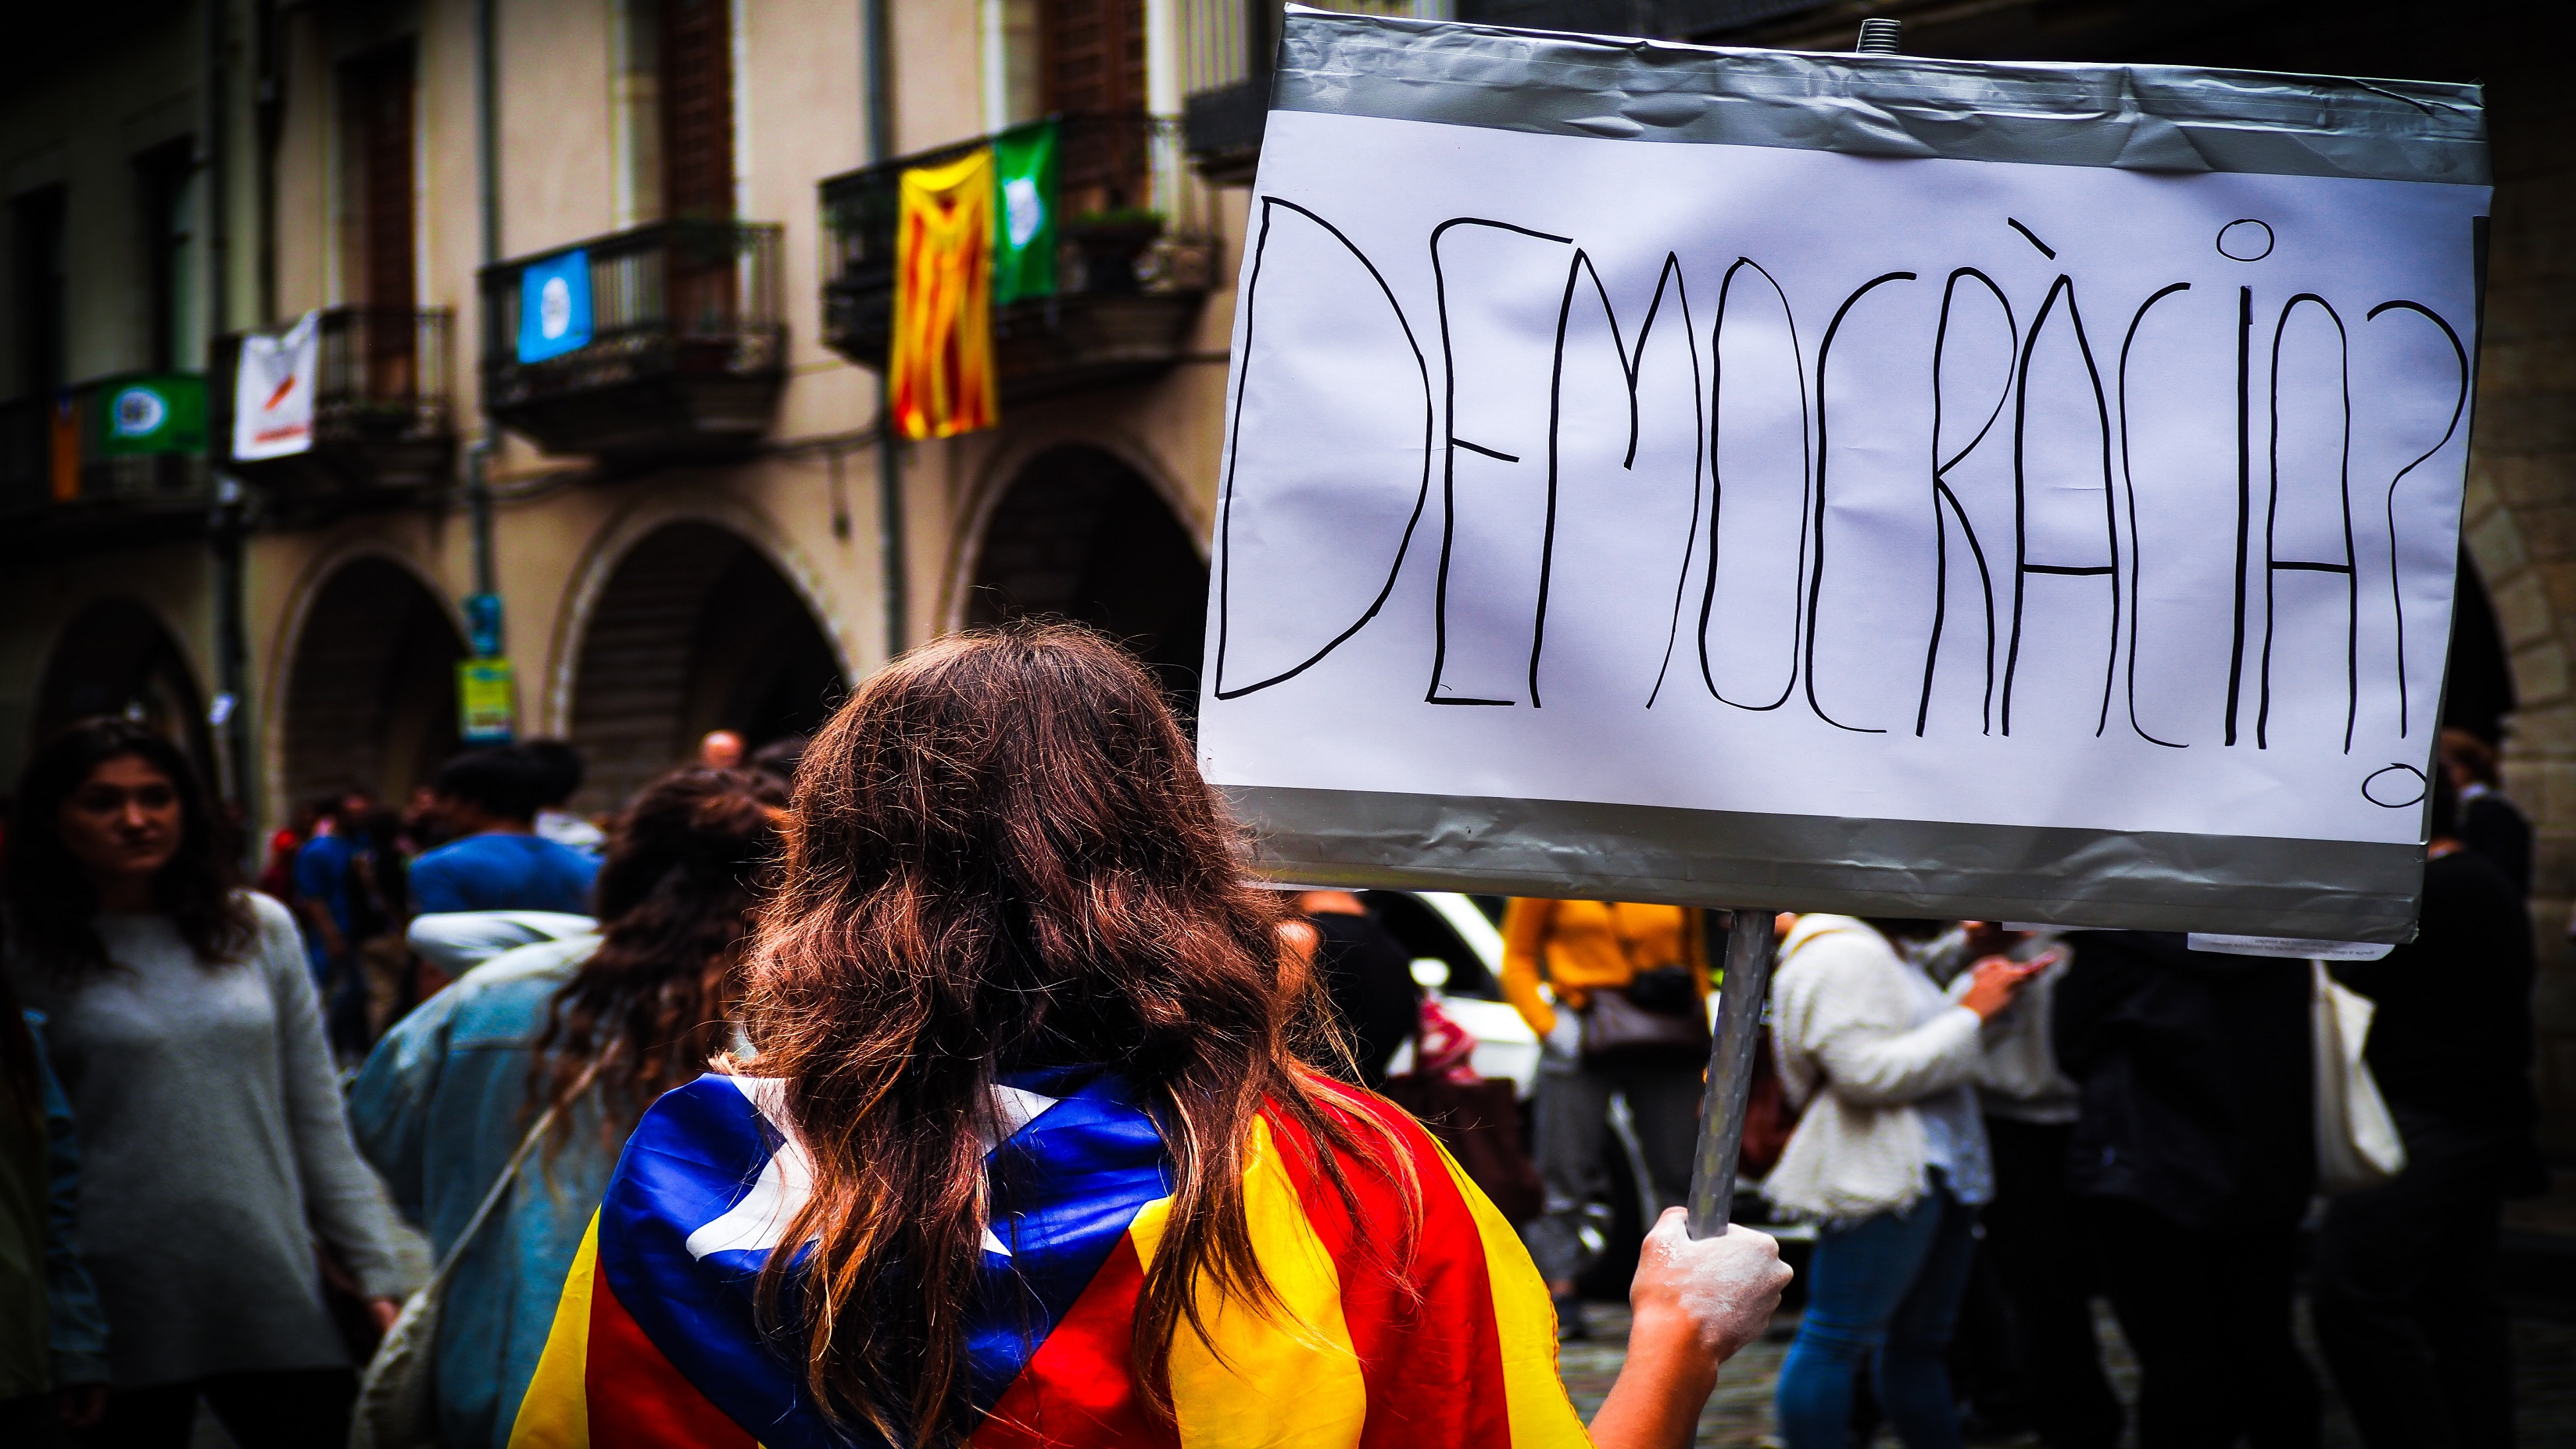 English: Controversial Police Behavior in Catalonia